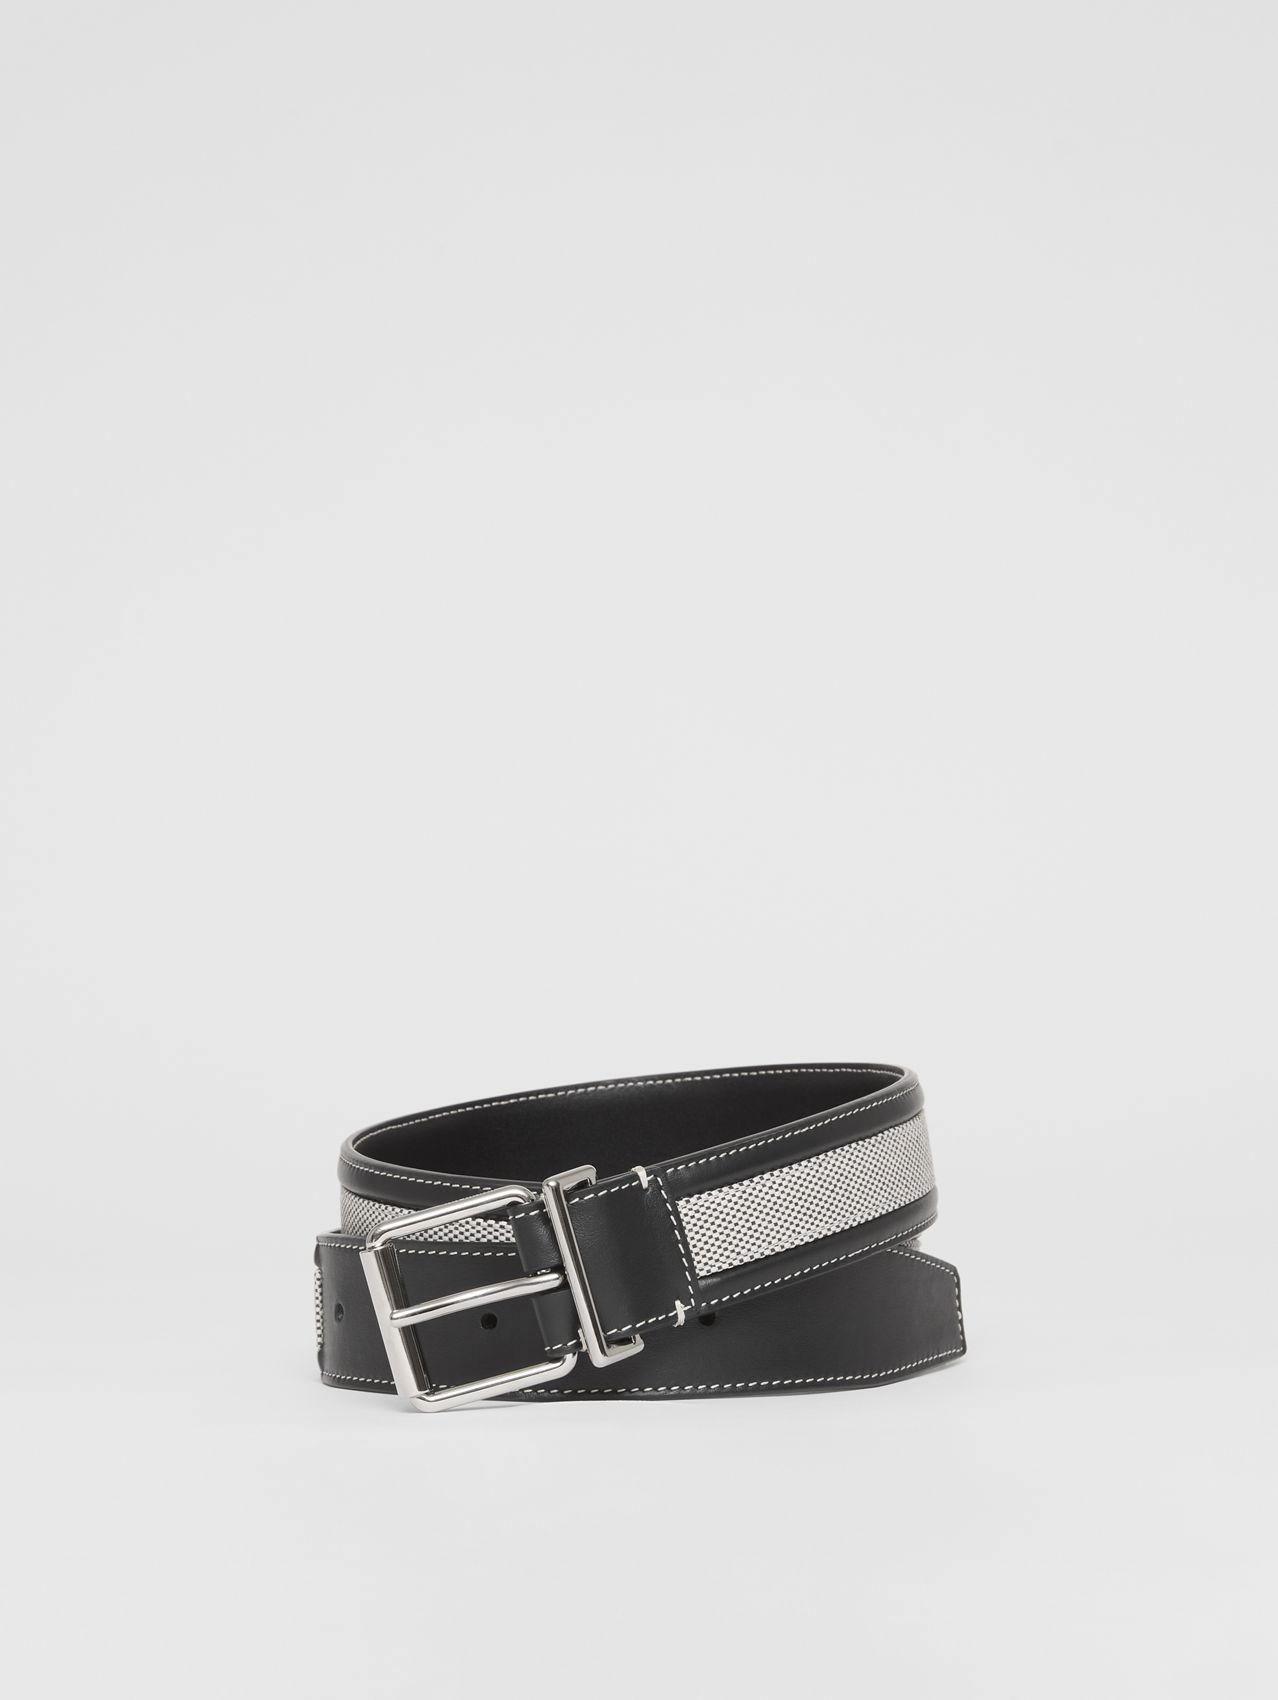 Cotton Canvas and Leather Belt in Black